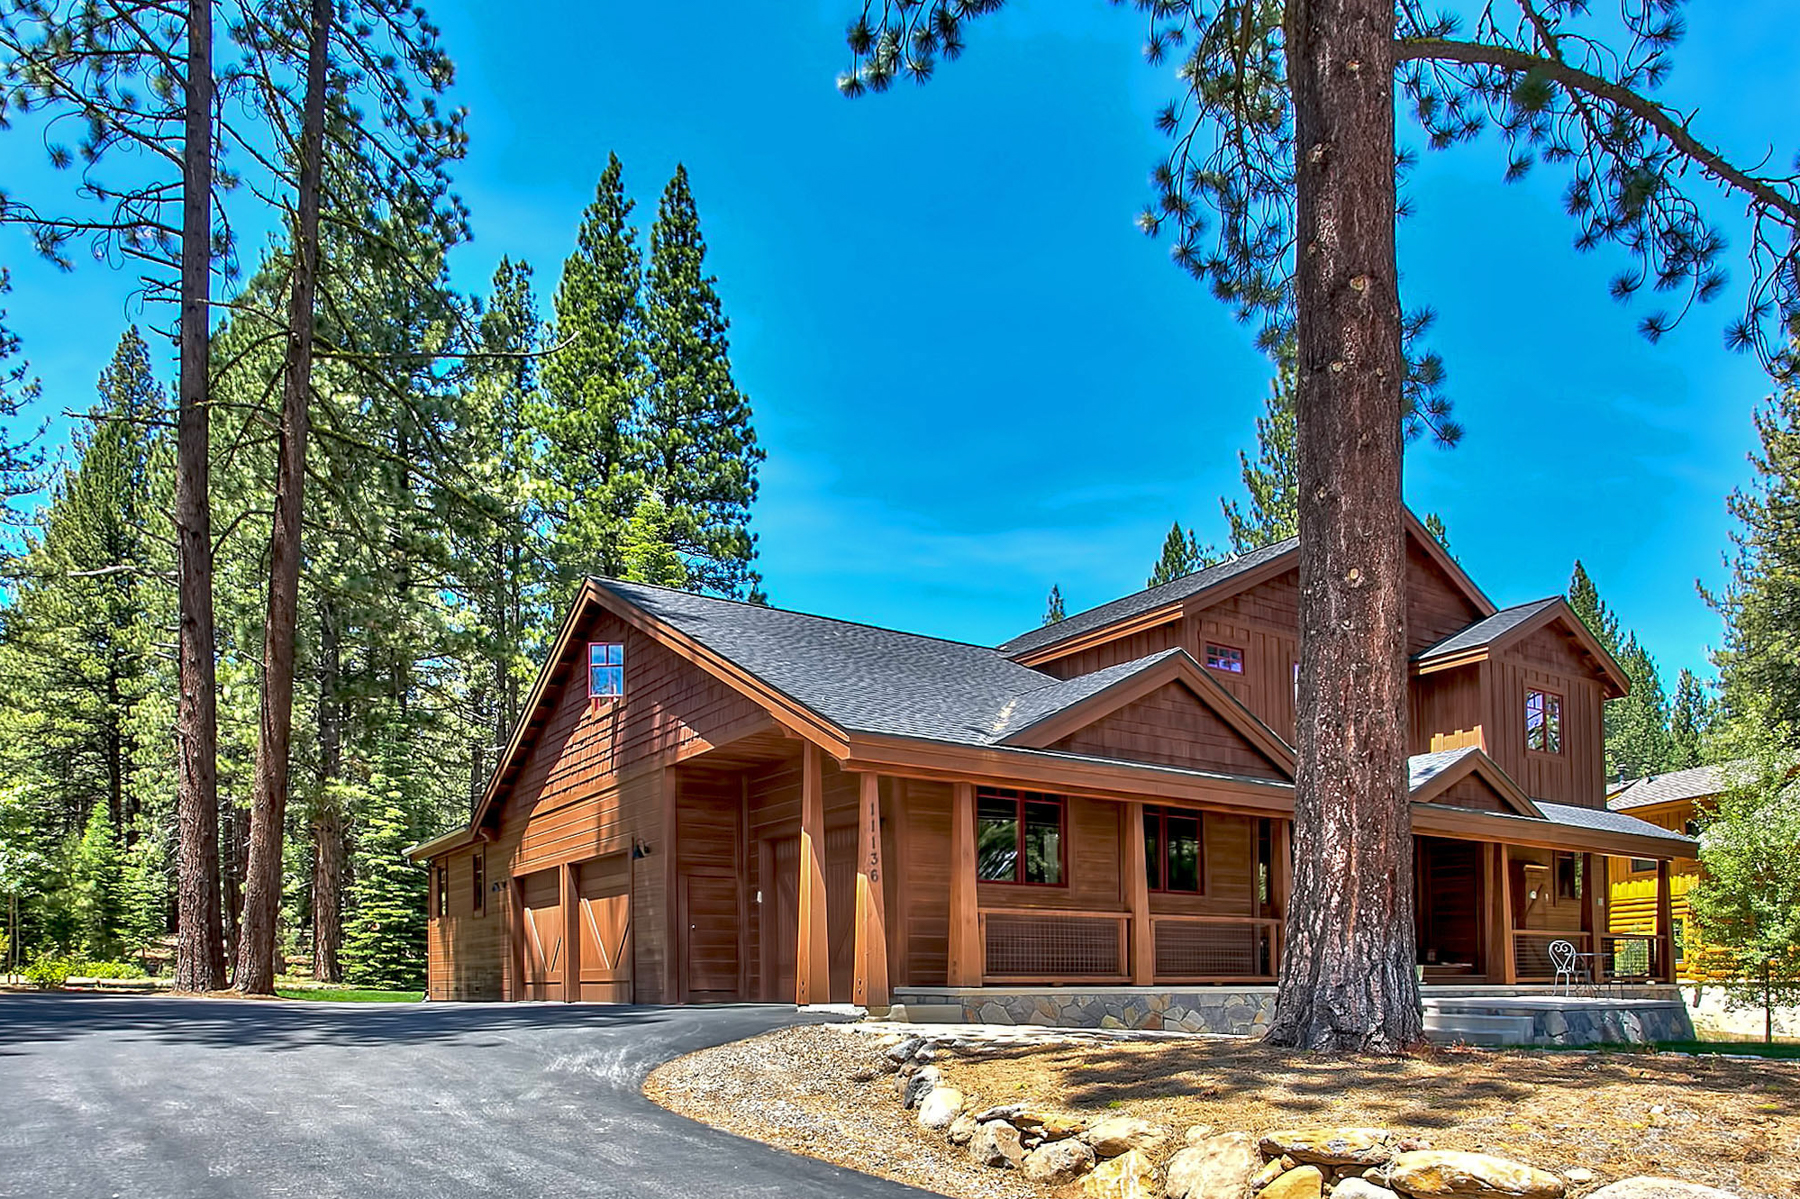 Single Family Home for Active at 11136 Comstock Drive Truckee, California 96161 United States